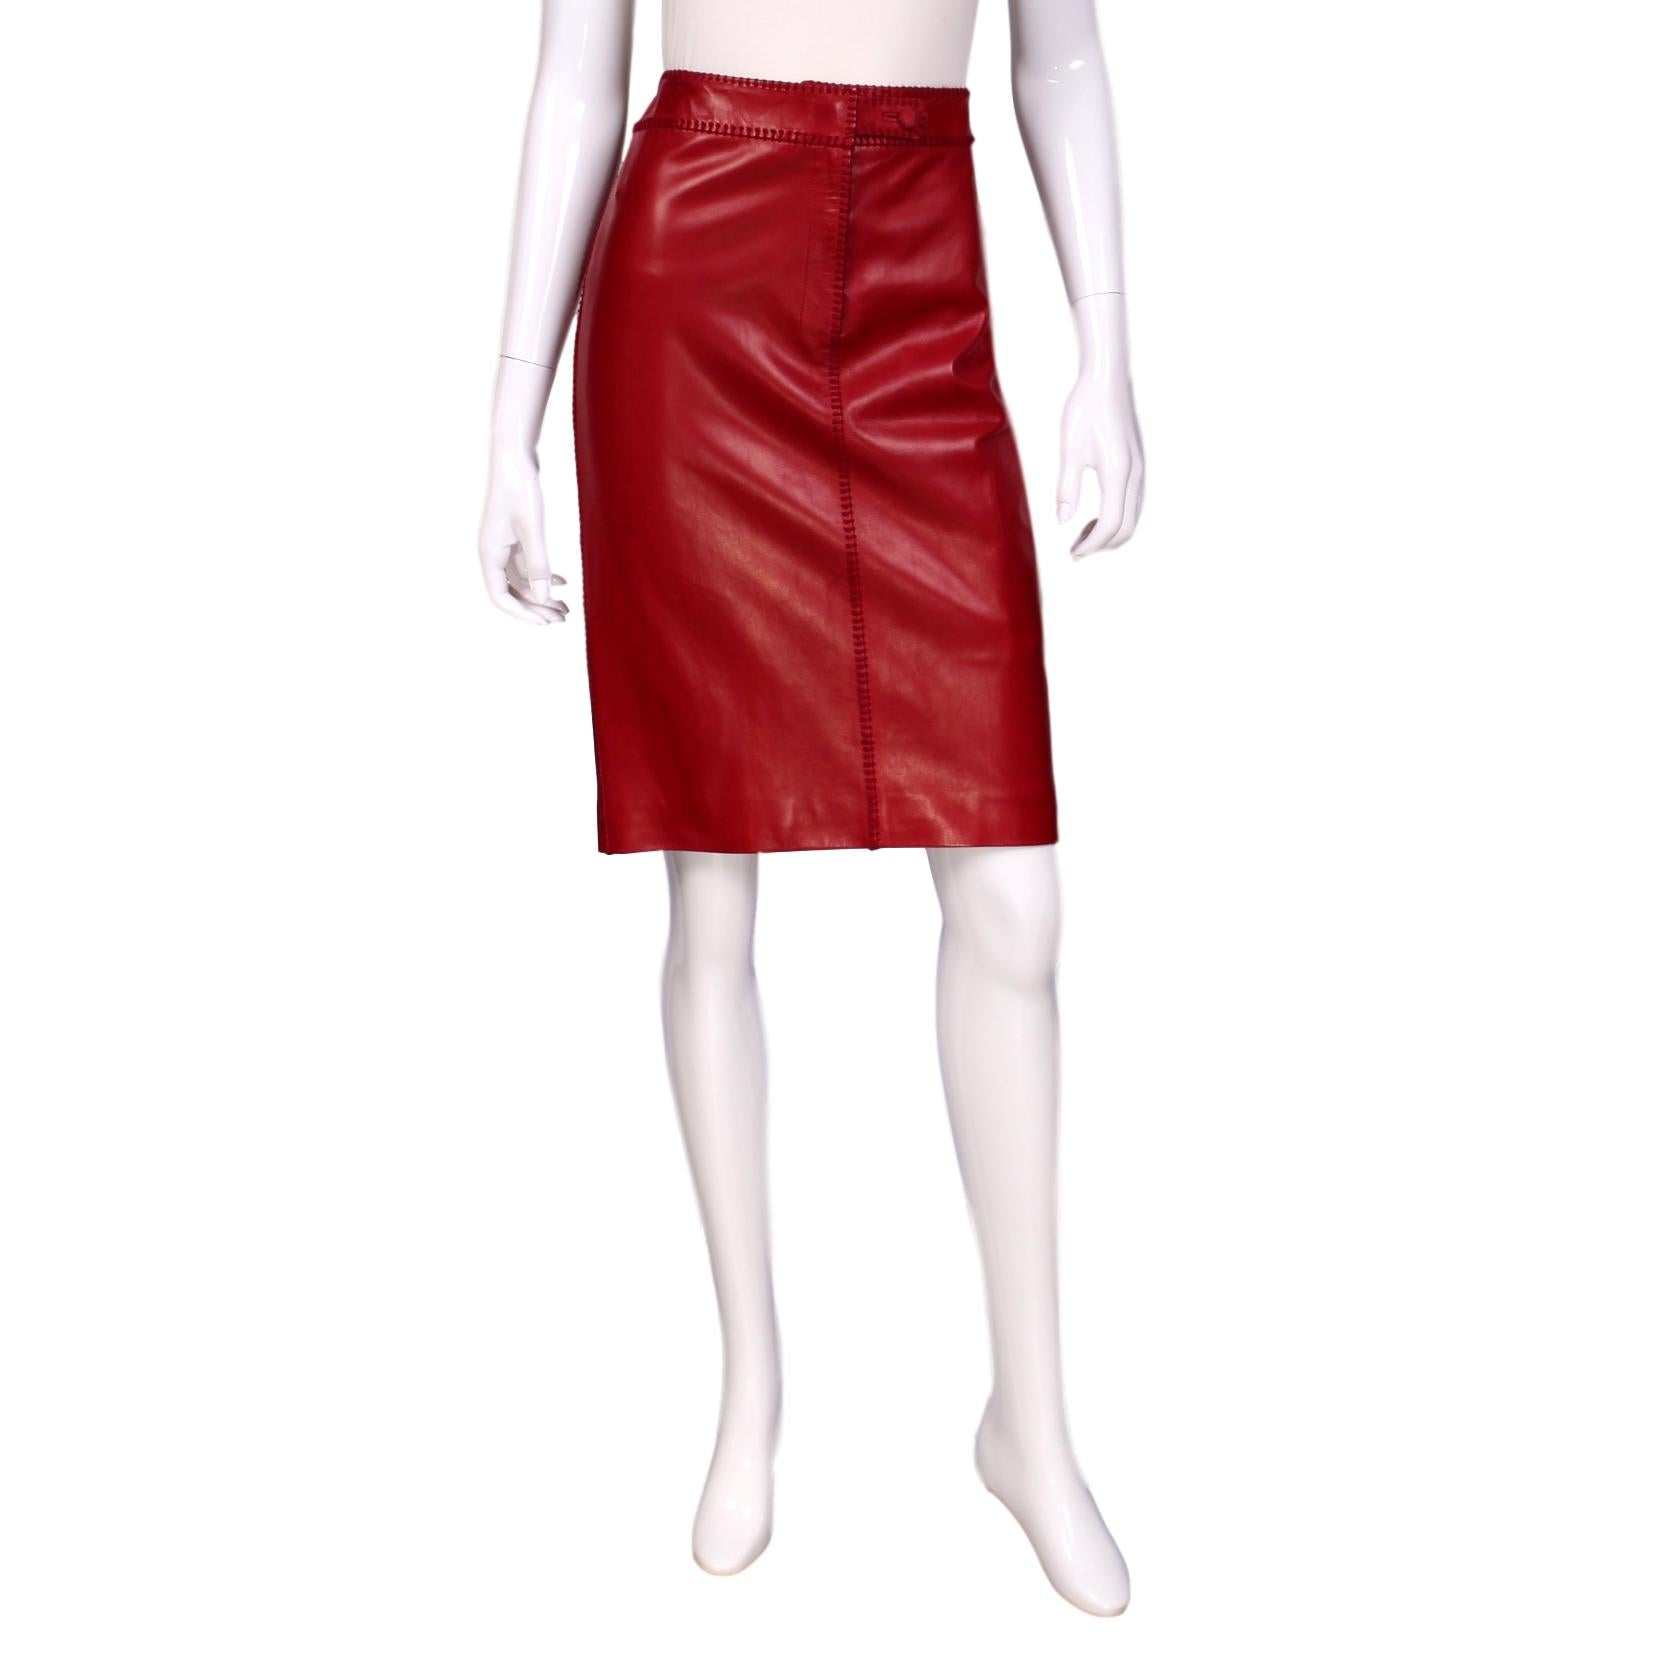 Yves Saint Laurent Knee-Length Satin Skirt